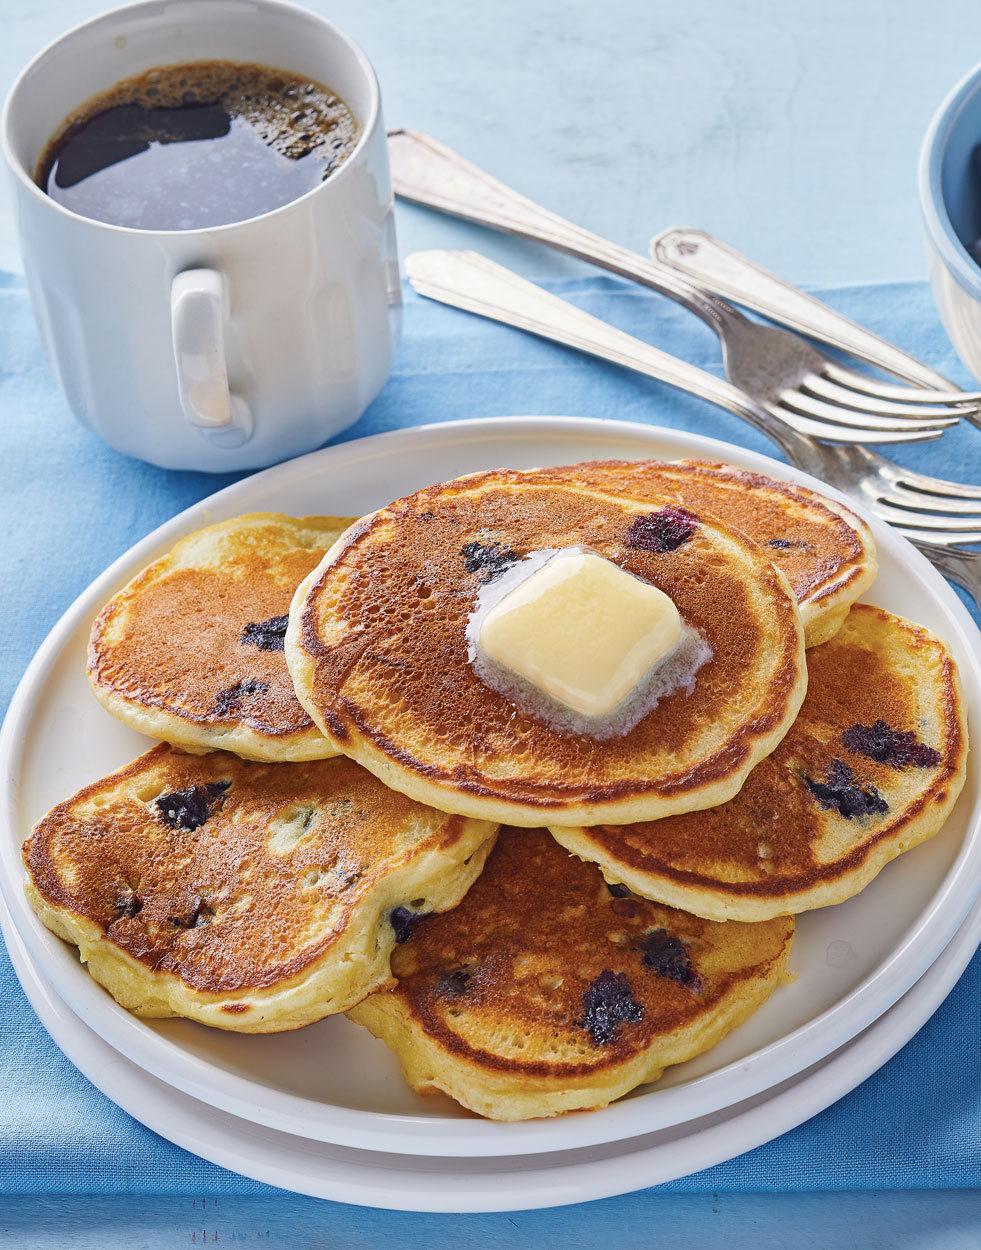 Blueberry Pancakes with Blueberry Syrup